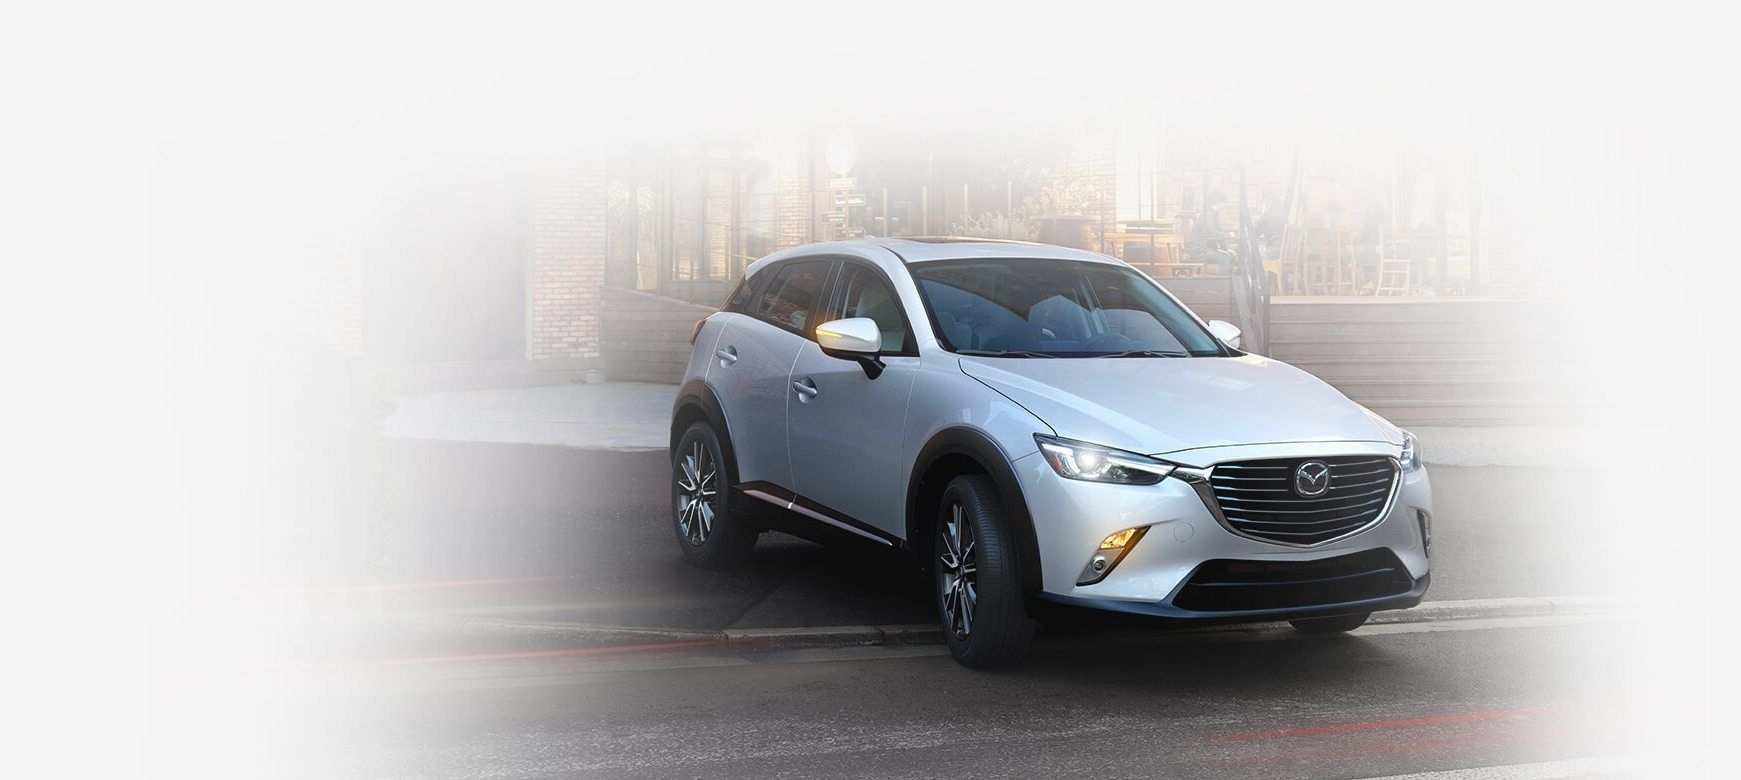 59 New The Mazda 2 2019 Lebanon Specs And Review Exterior and Interior by The Mazda 2 2019 Lebanon Specs And Review